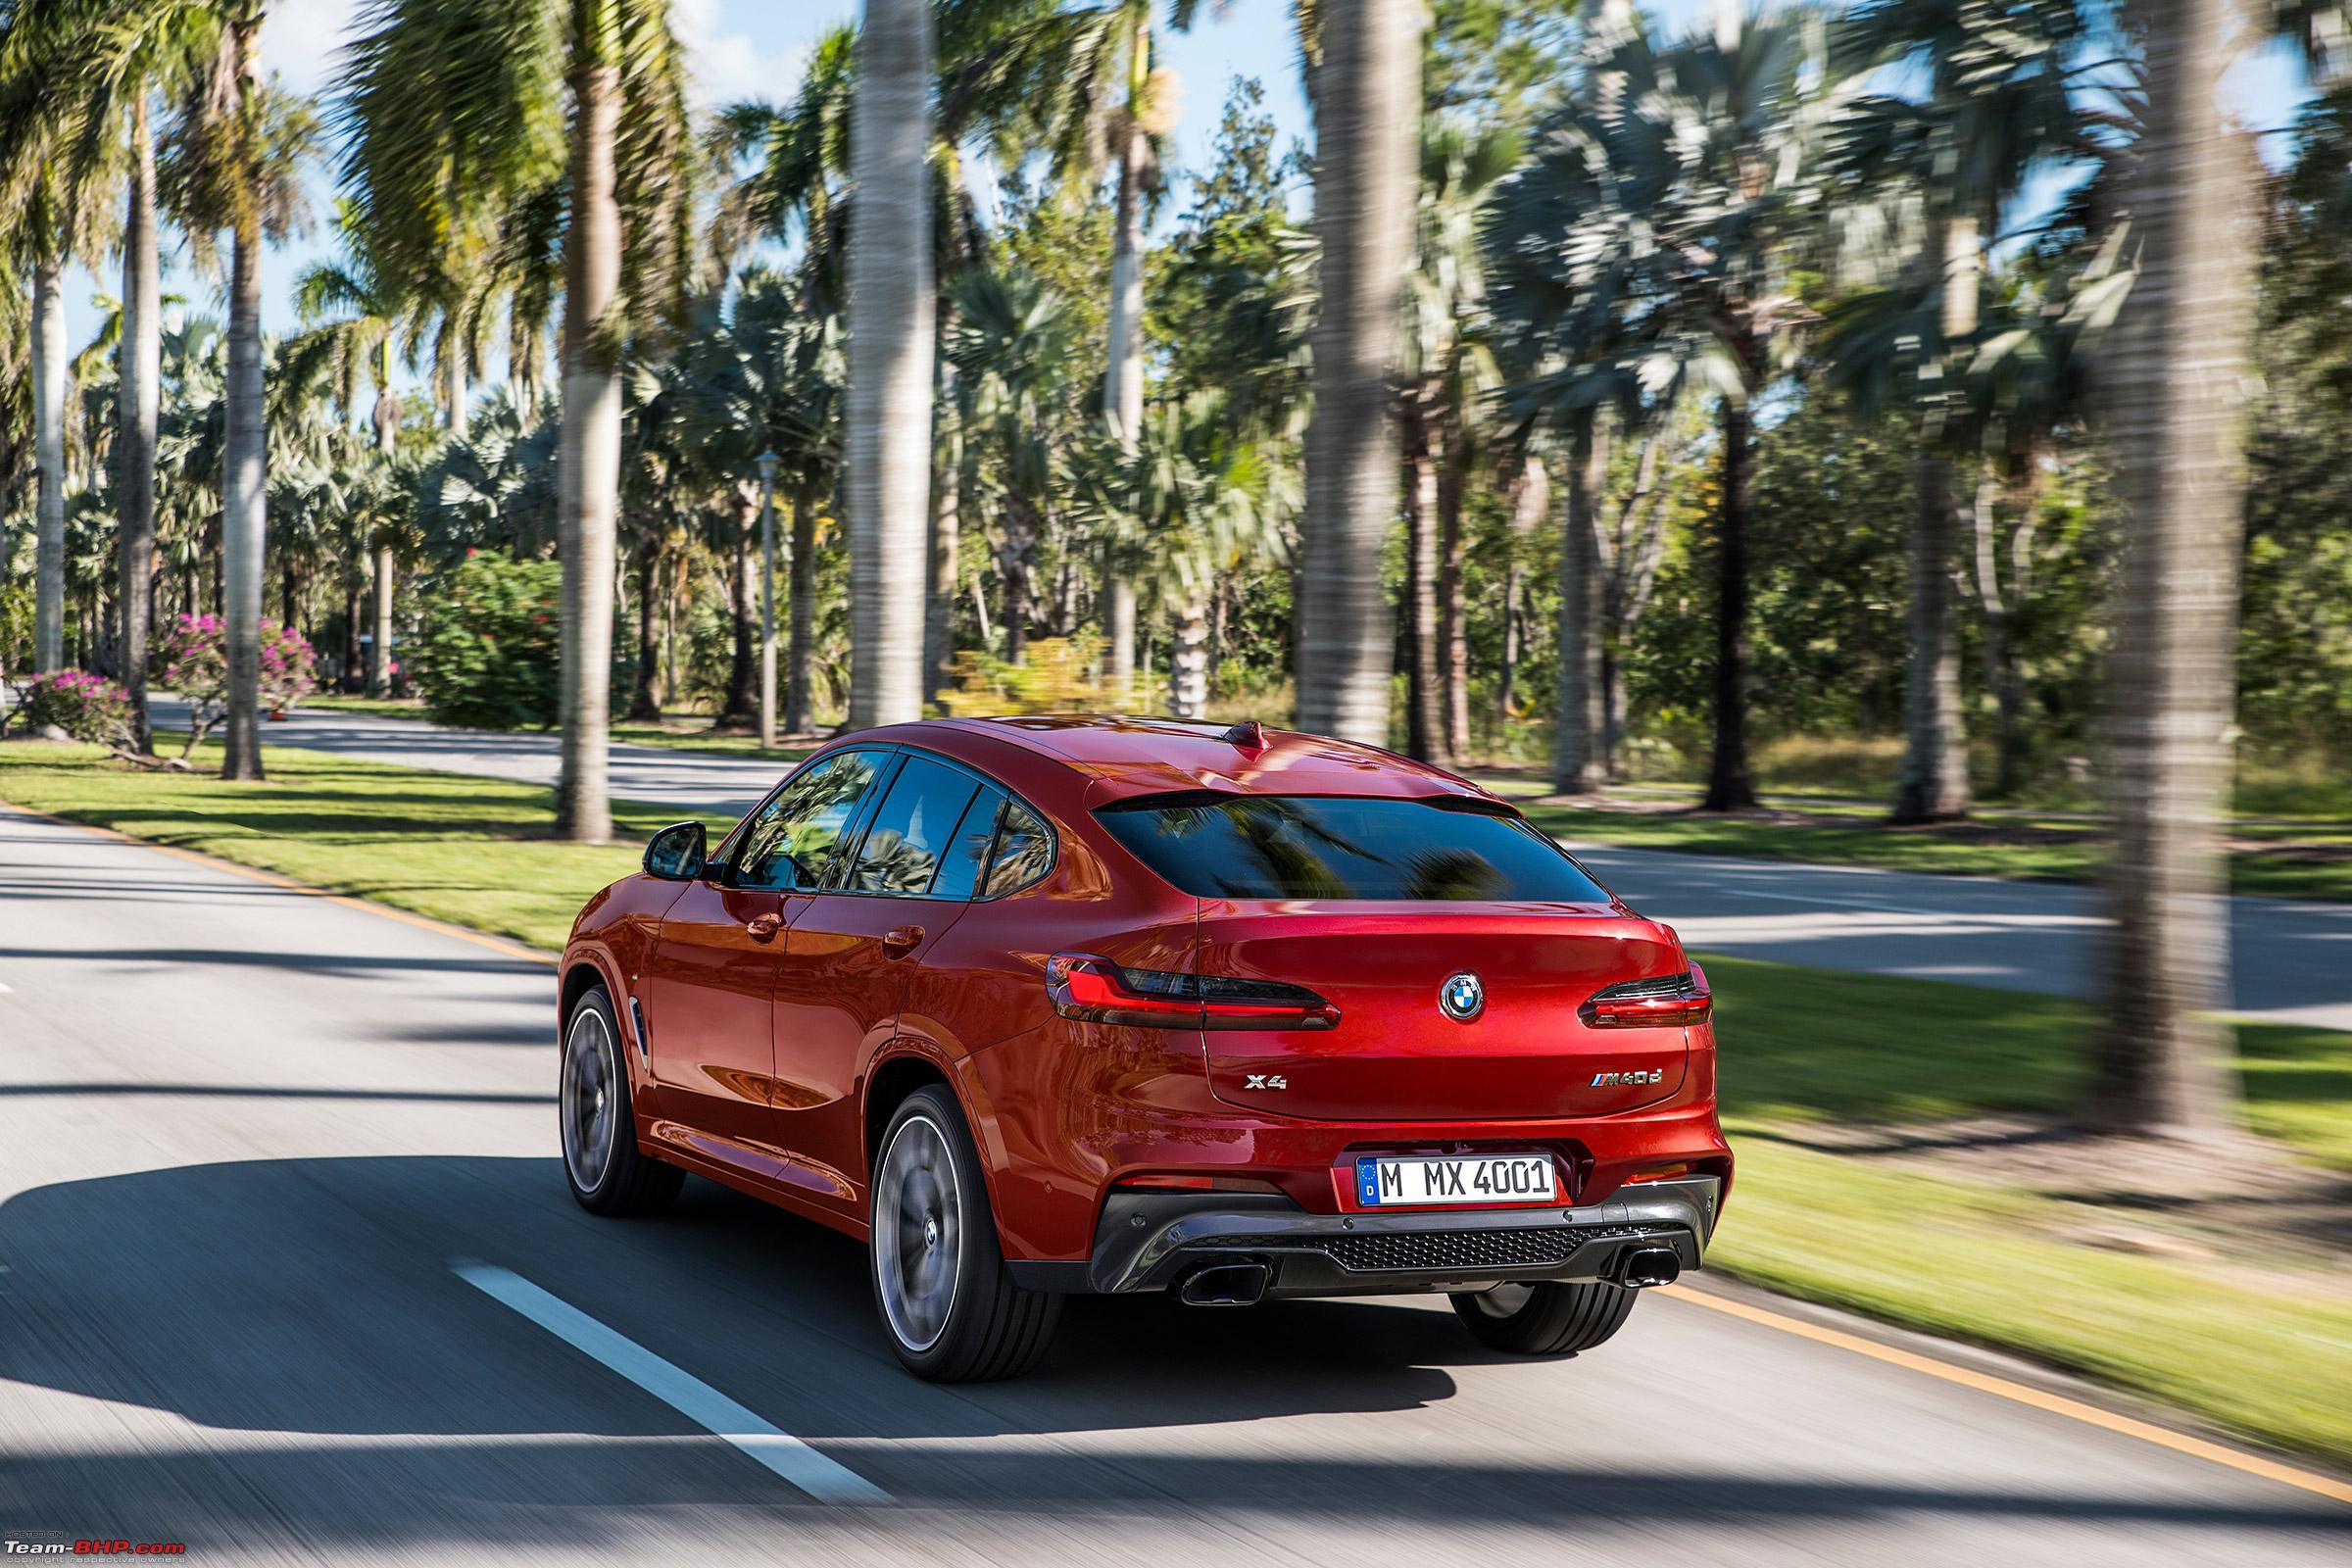 Rumour Bmw X4 Coming To India In 2019 Edit Launched 60 60 Lakhs